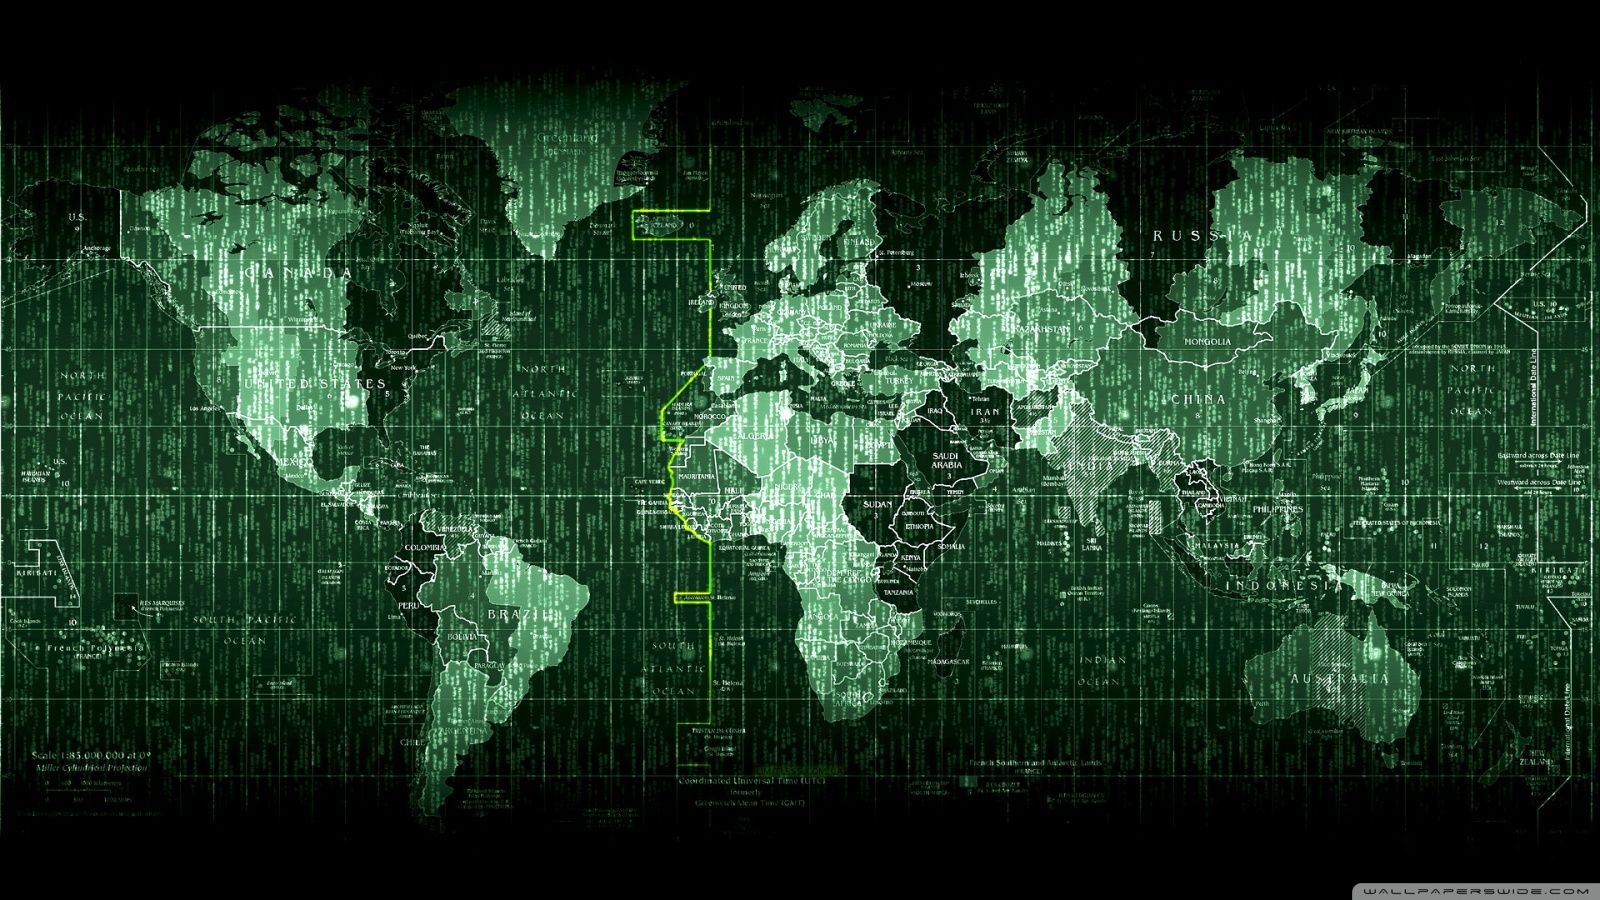 Matrix code world map hd desktop wallpaper high definition matrix code world map hd desktop wallpaper high definition gumiabroncs Image collections